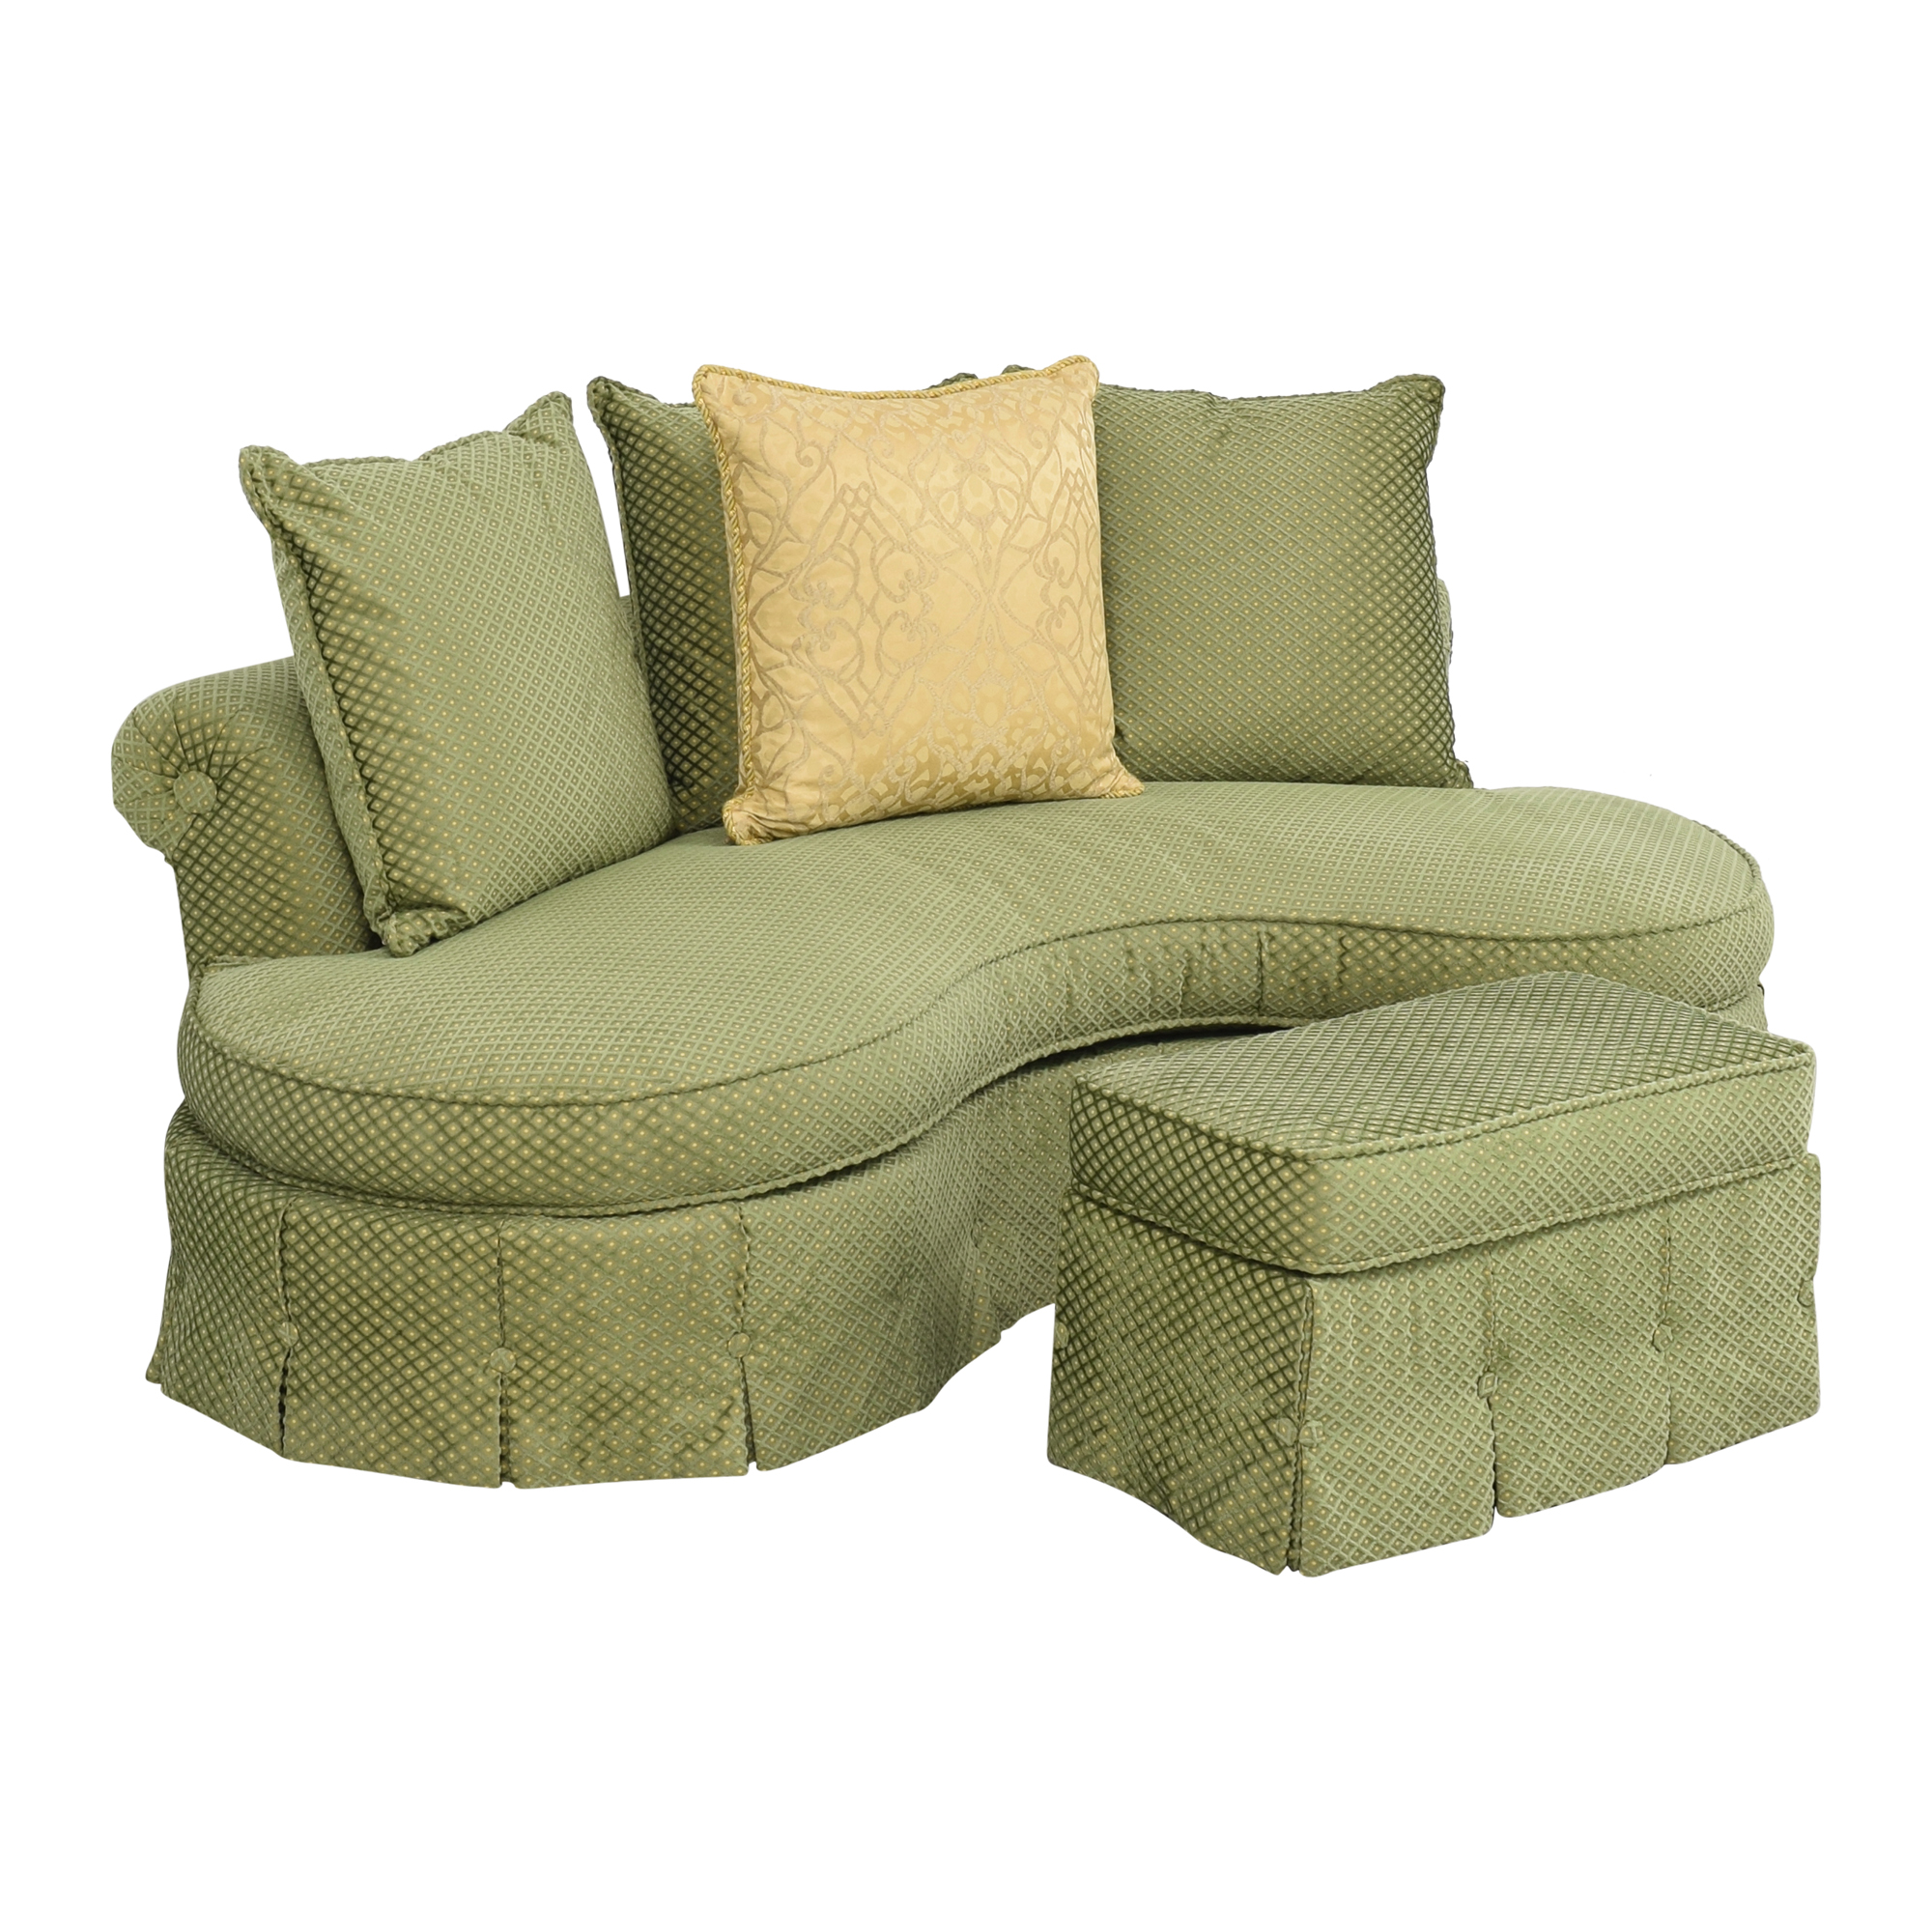 Custom Curved Sofa with Skirted Base and Matching Ottoman sale